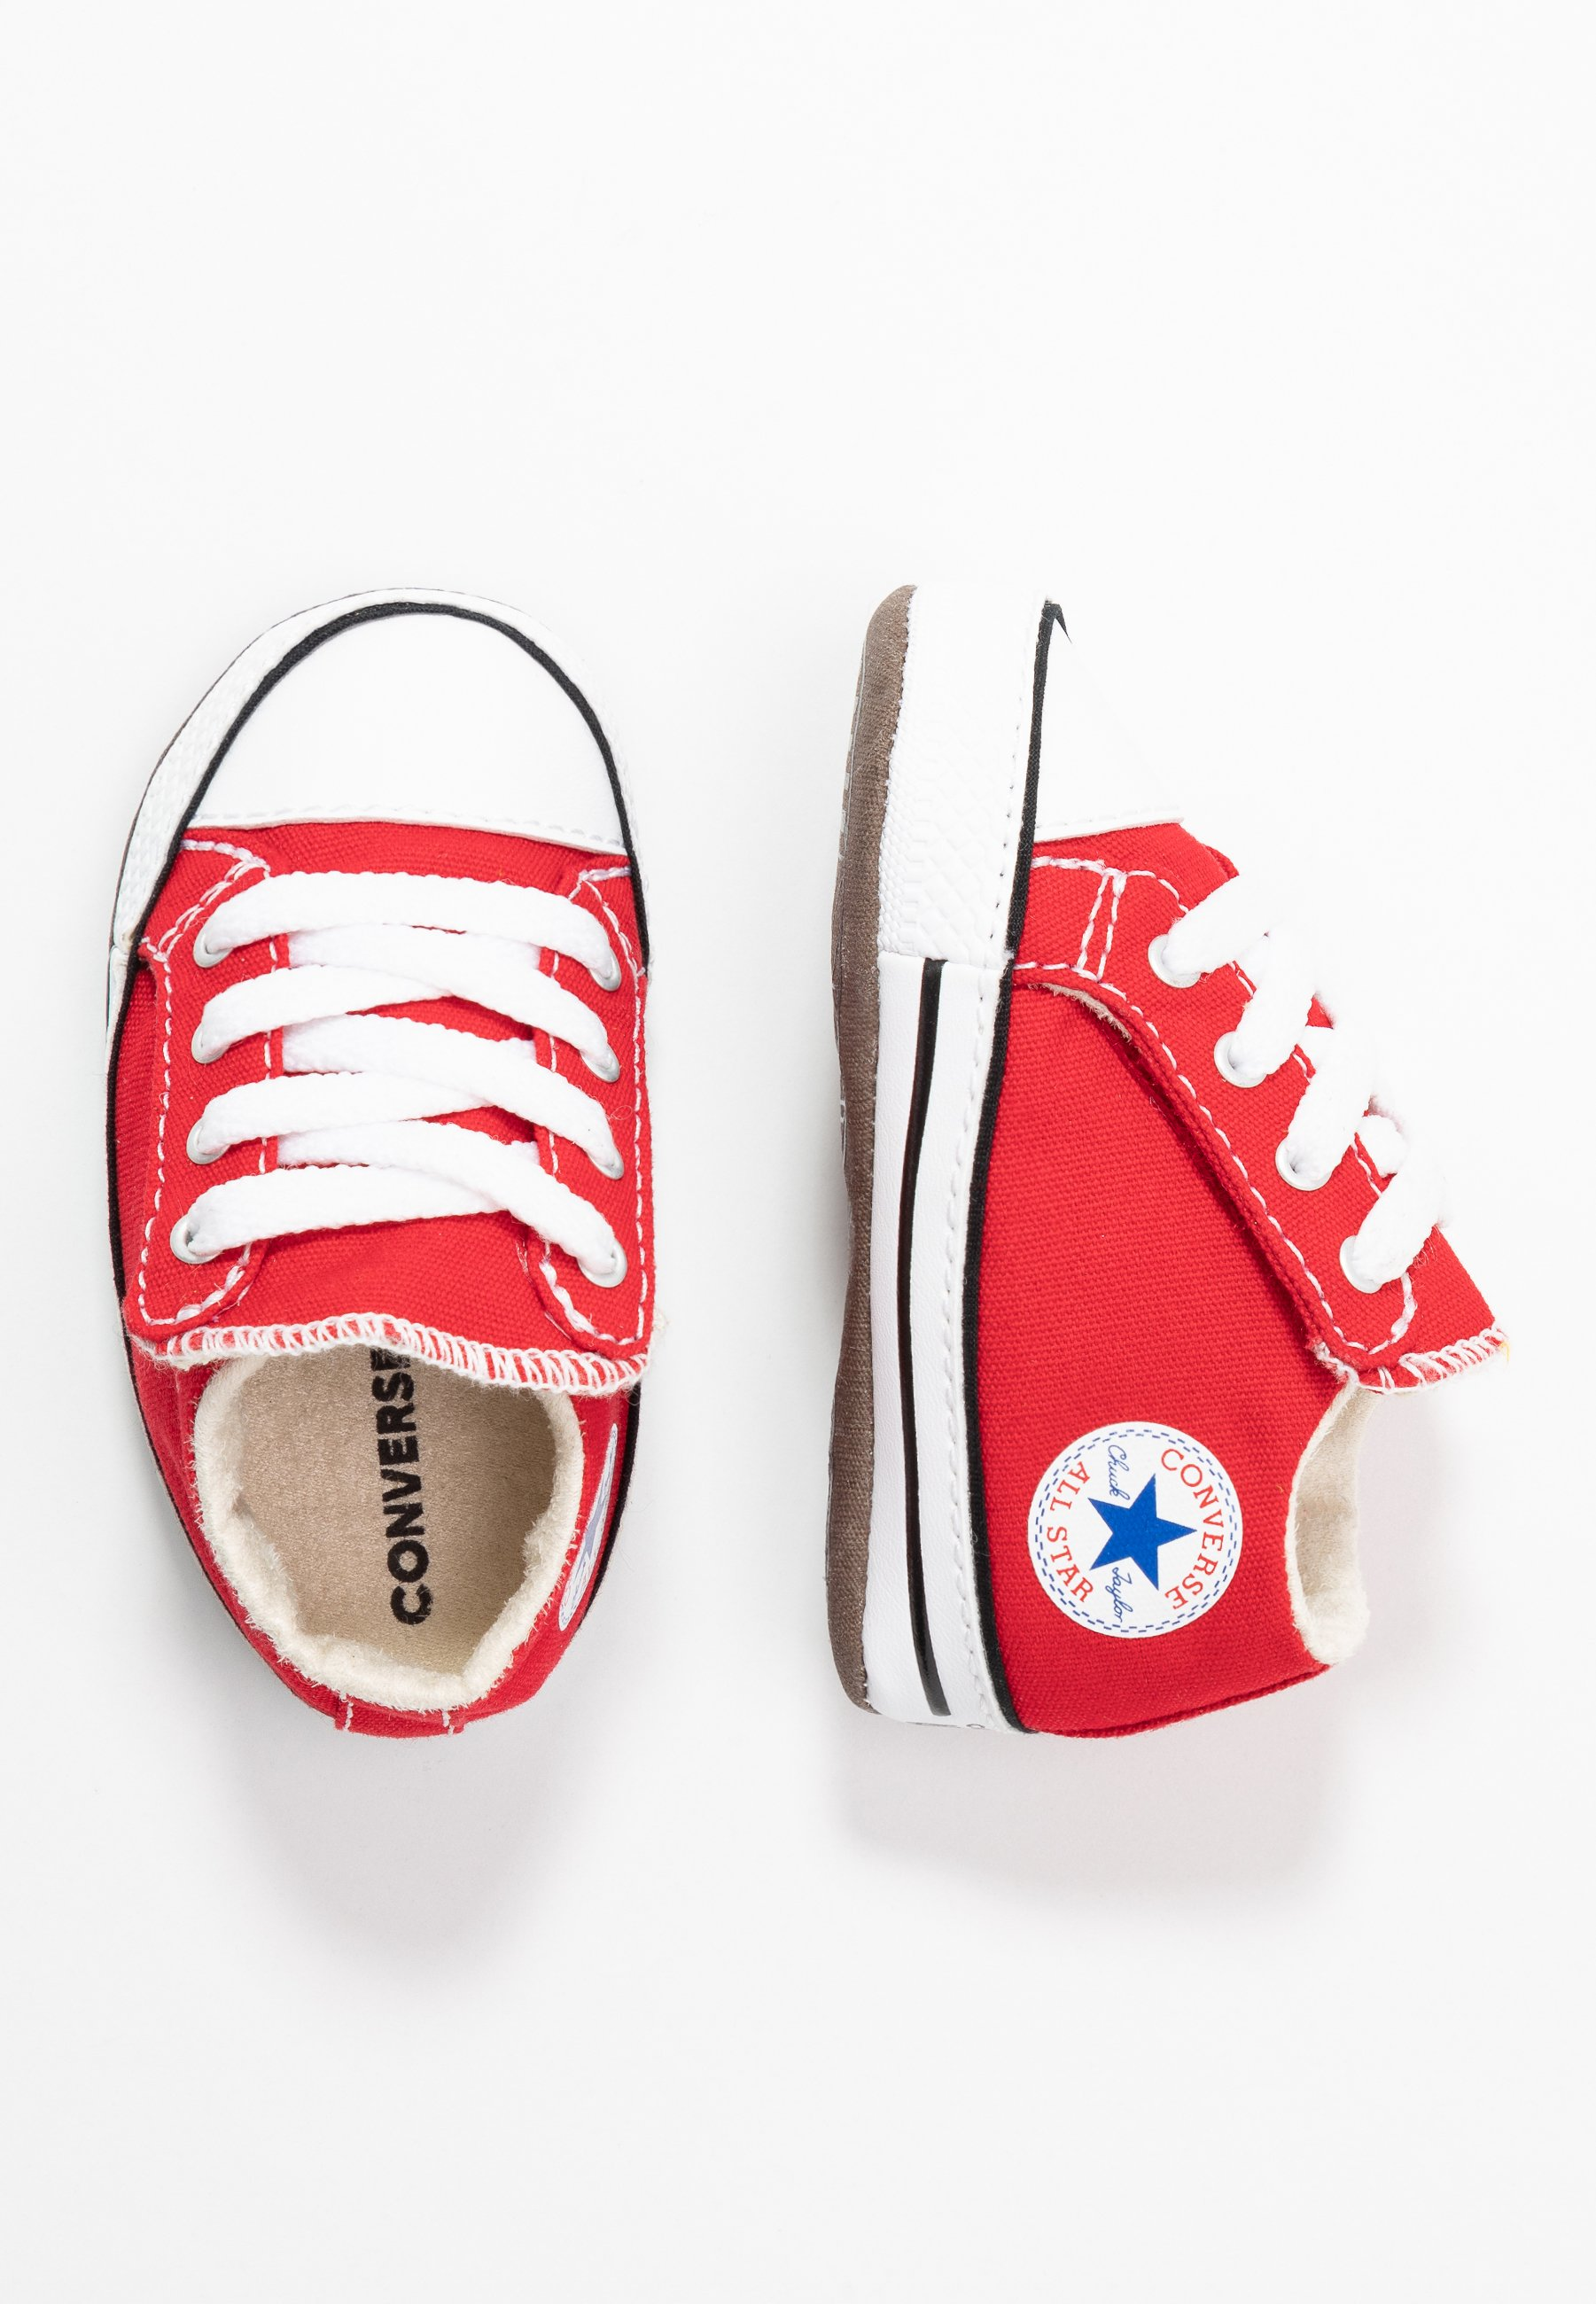 CHUCK TAYLOR ALL STAR CRIBSTER MID - Scarpe neonato - university red/natural ivory/white